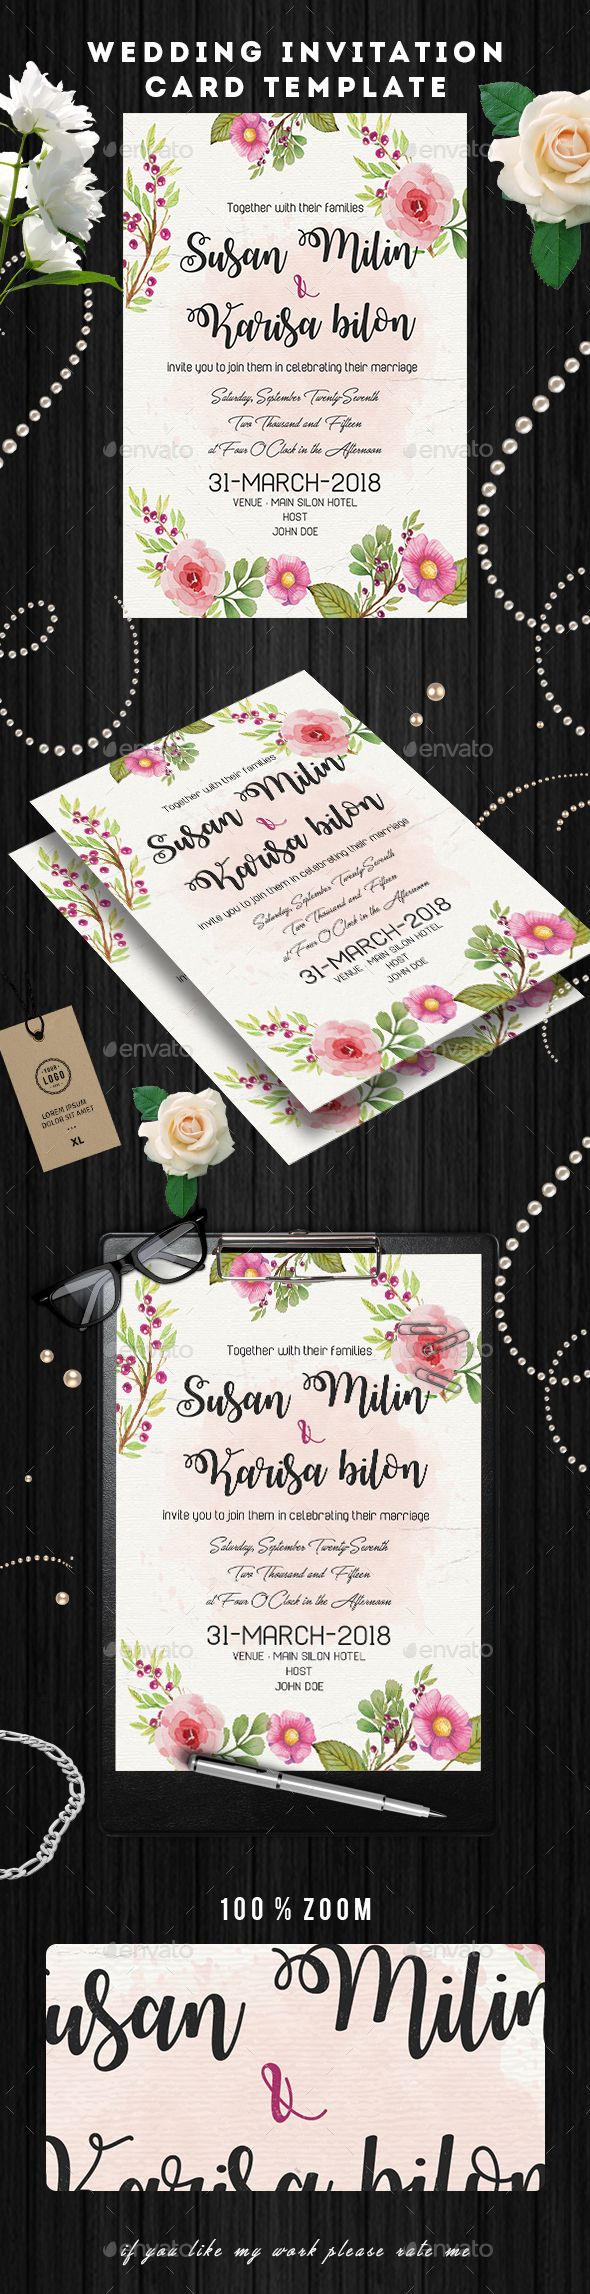 business event invitation templates%0A Wedding Invitation Card Flyer